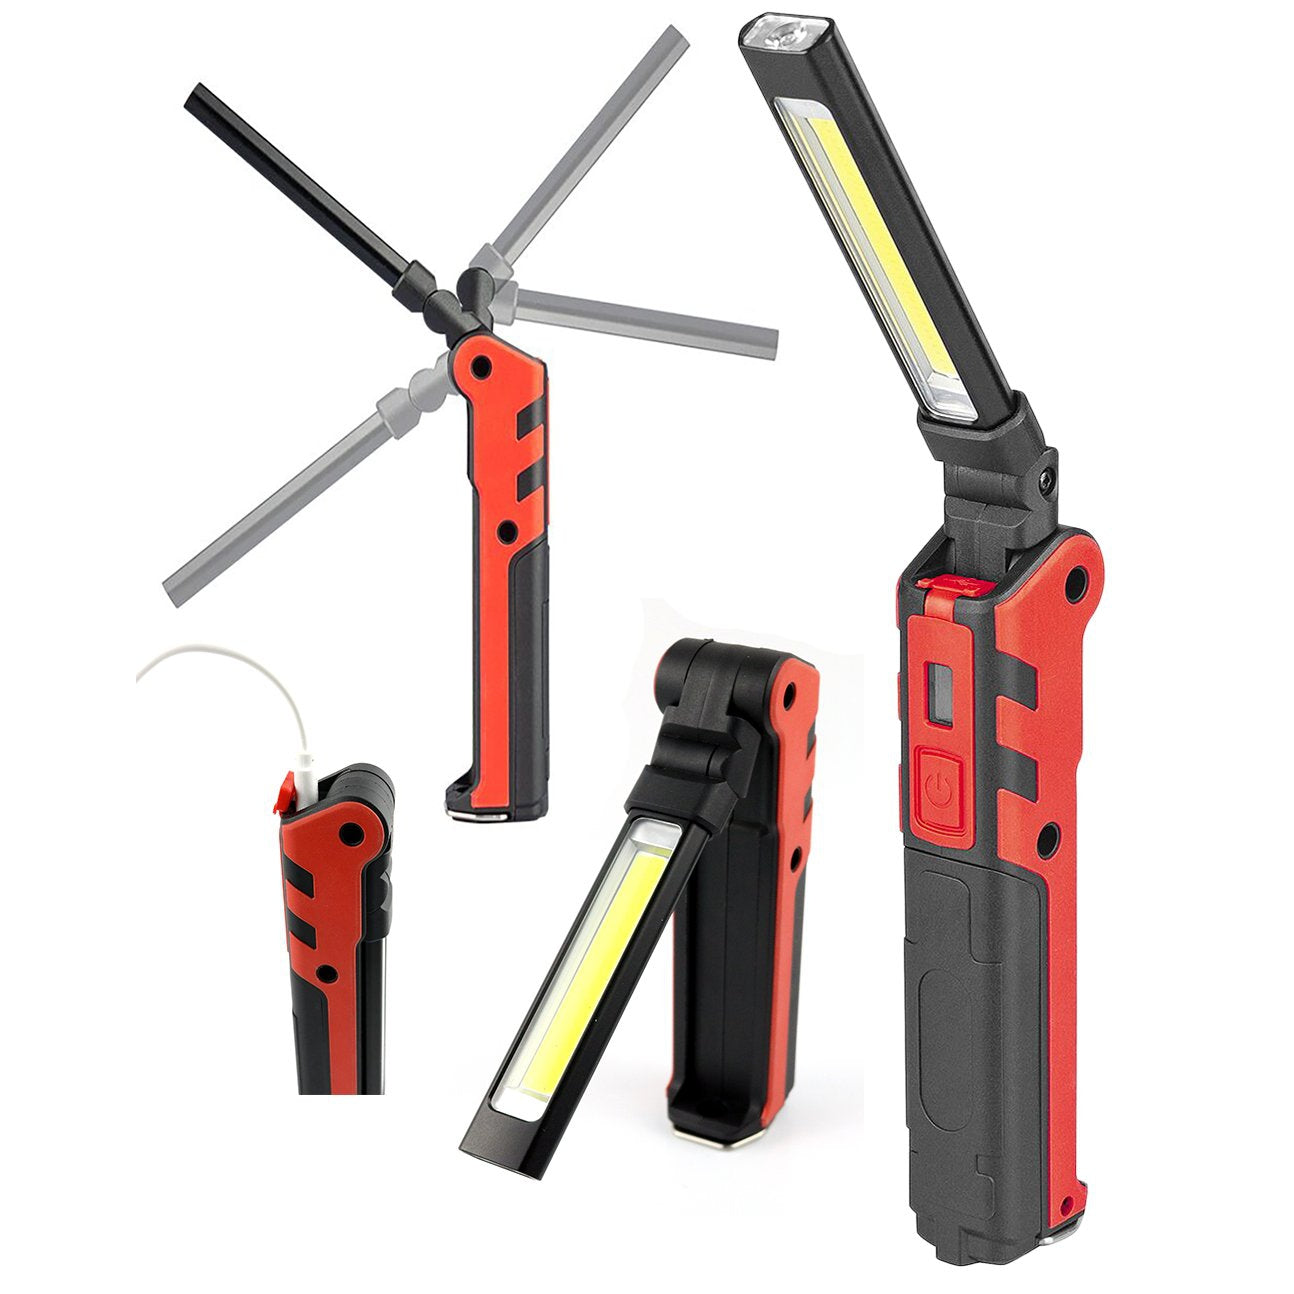 LED Rechargeable Foldable Dual Work Light - Online Tools - OnlineTools